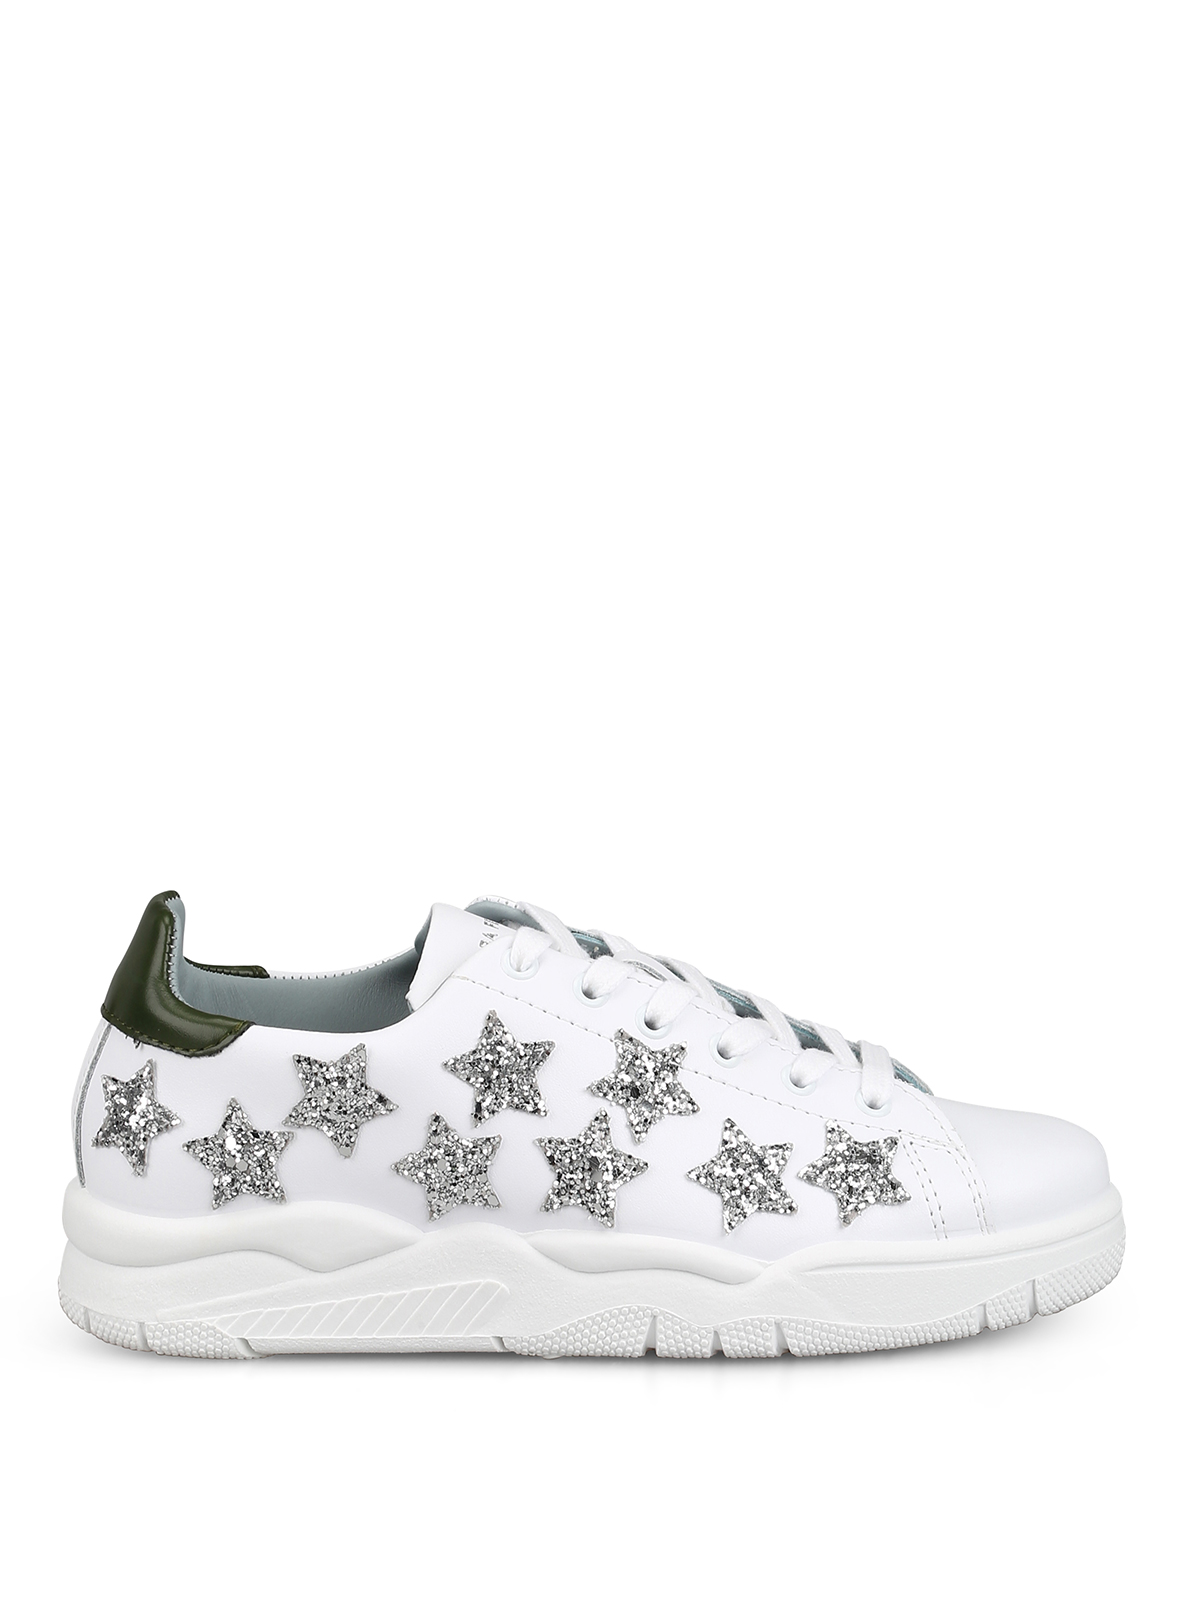 Chiara Ferragni Glitter Star Patches Leather Sneakers In White